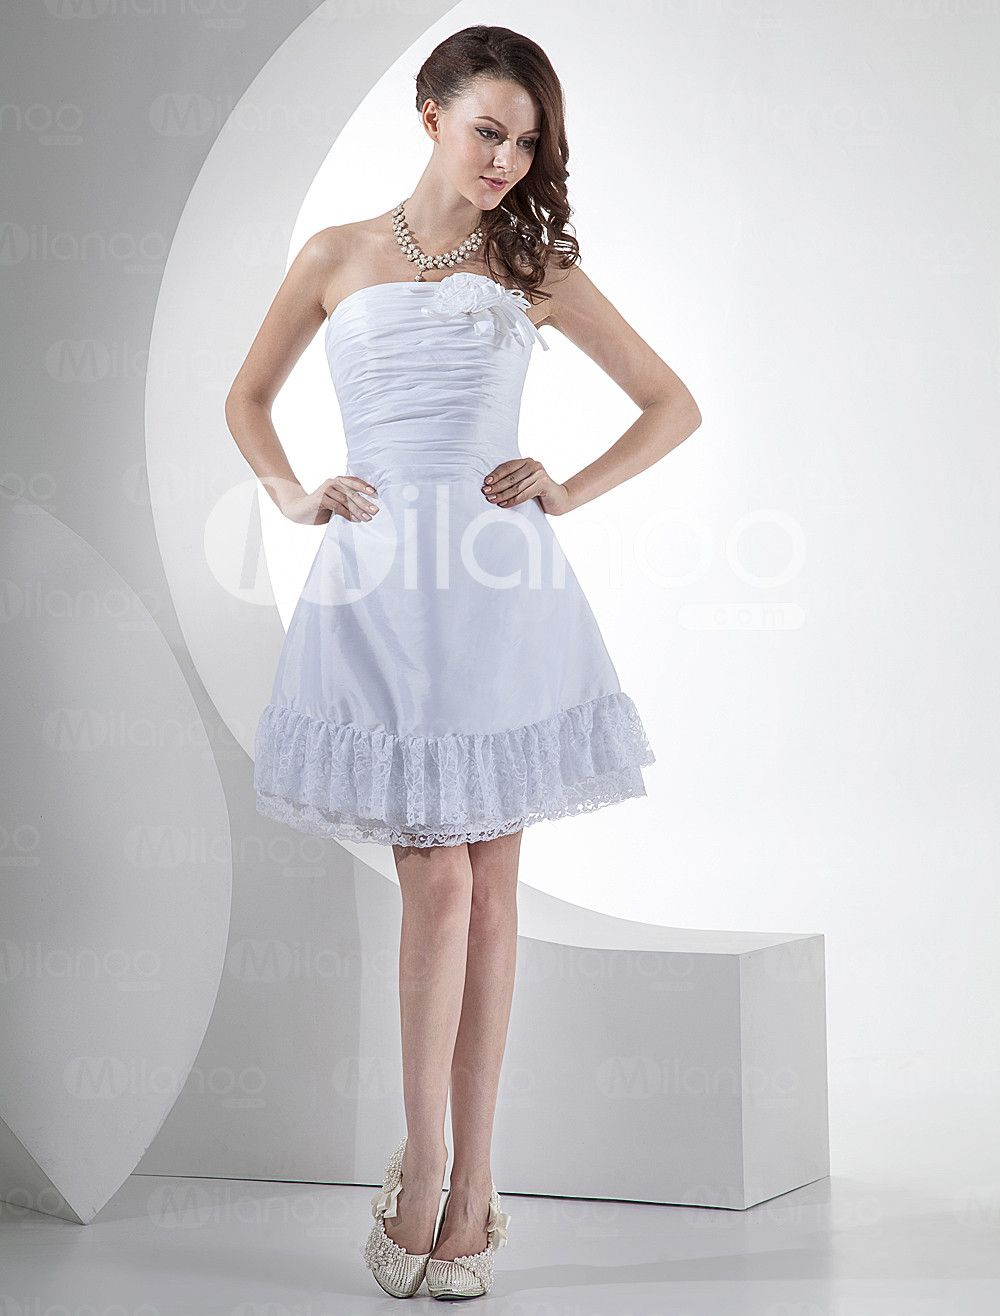 Mini white wedding dress  Romantic Strapless Ruffles Taffeta Mini Wedding Dress  Milanoo